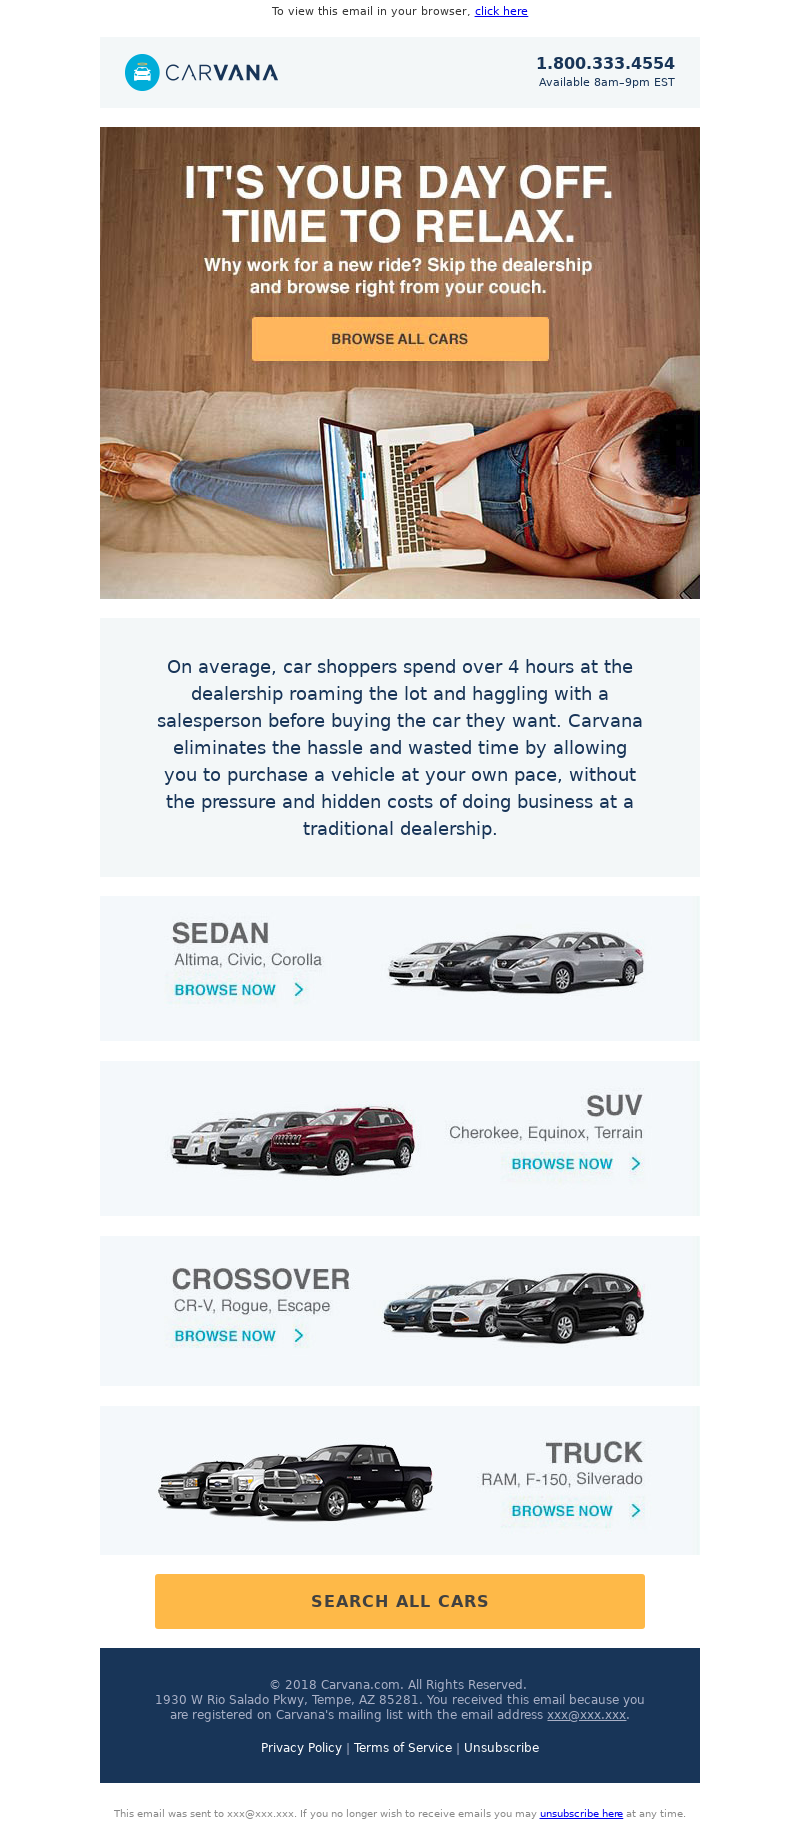 Carvana Labor Day Email